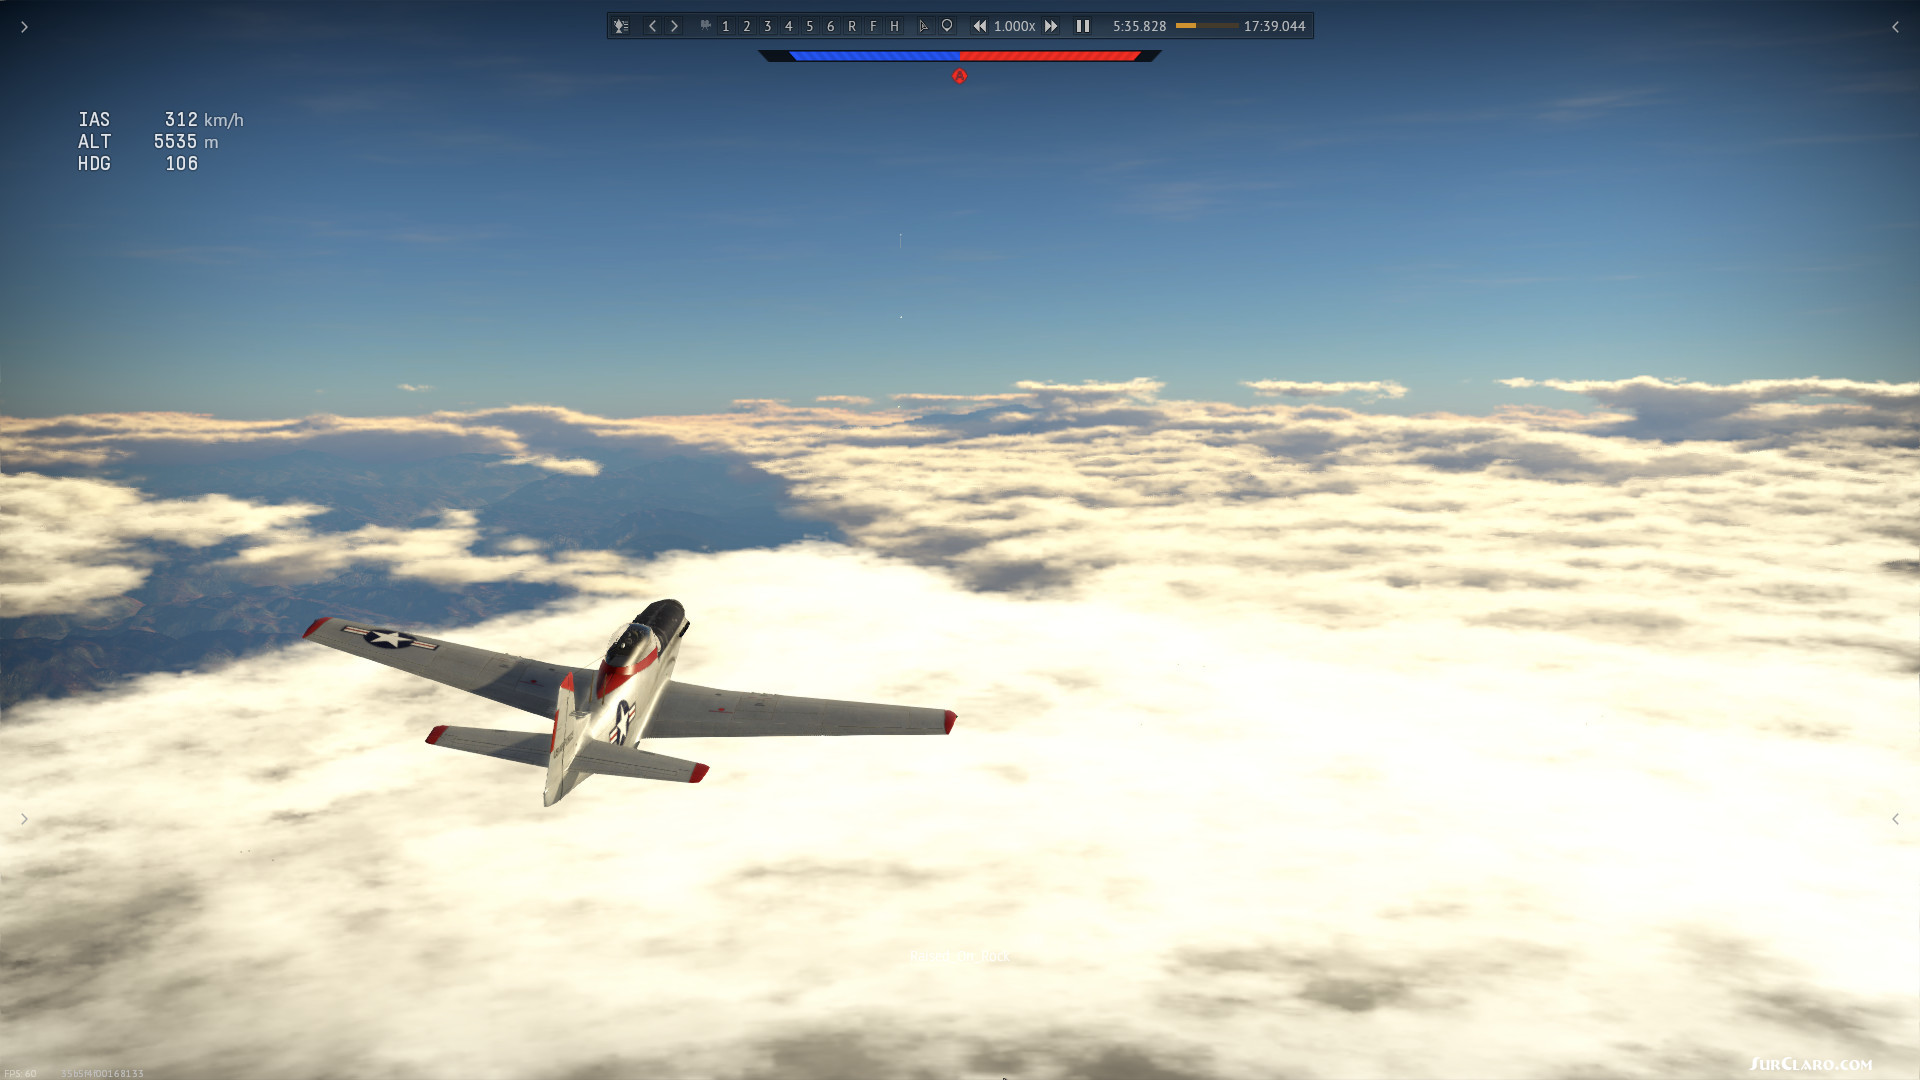 P51 over Norway image with full War Thunder game elements as it is, no edition - Photo 18832